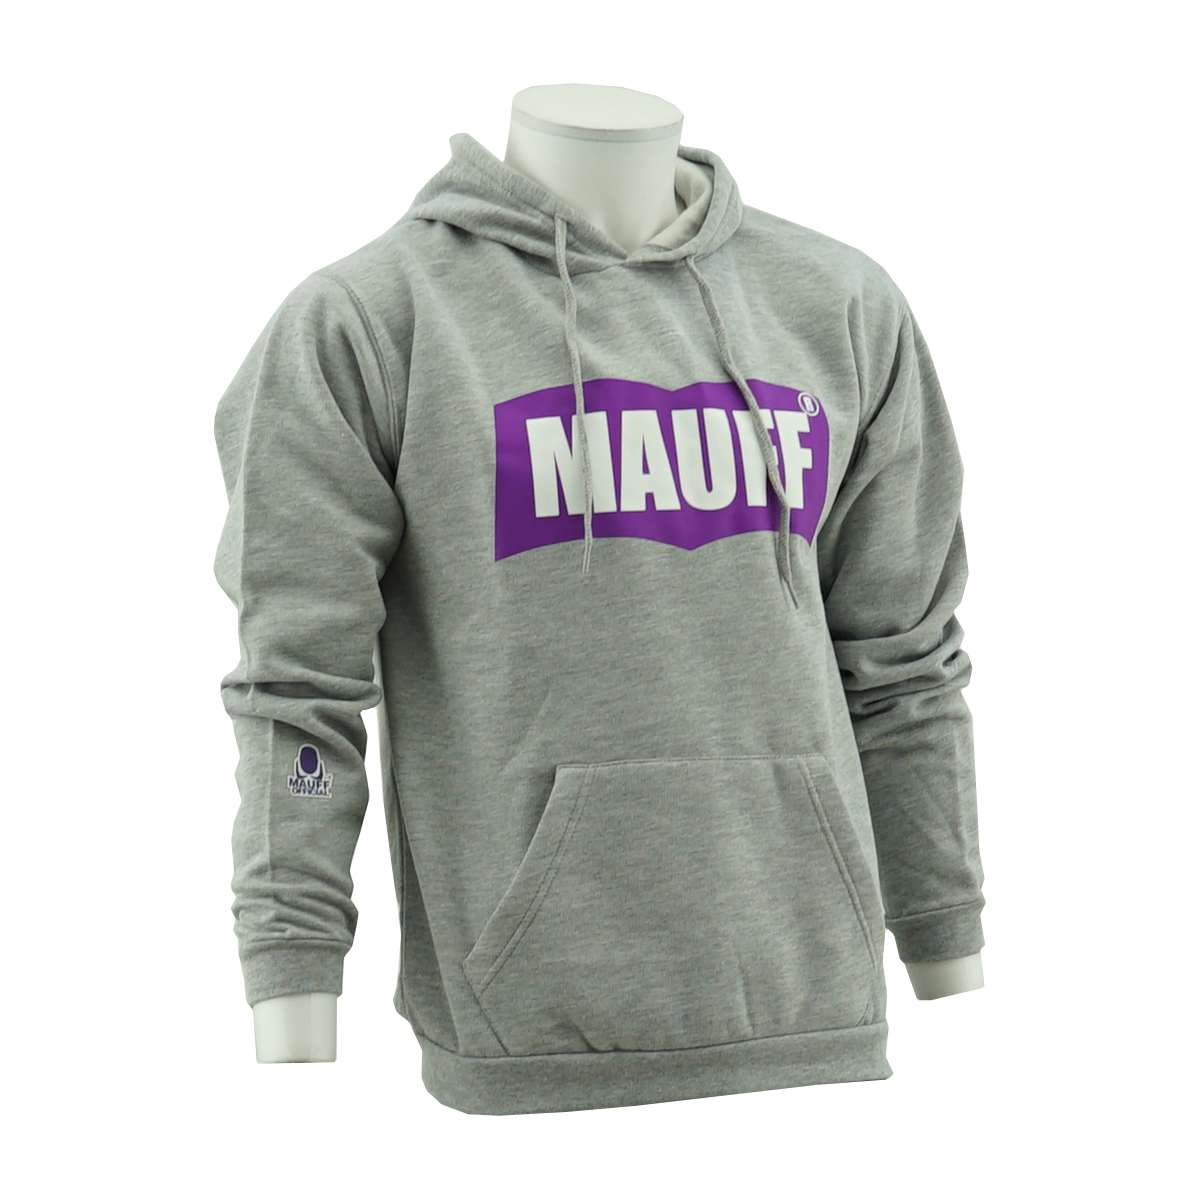 RSCA Sweater Met Kap Mauff Stretched